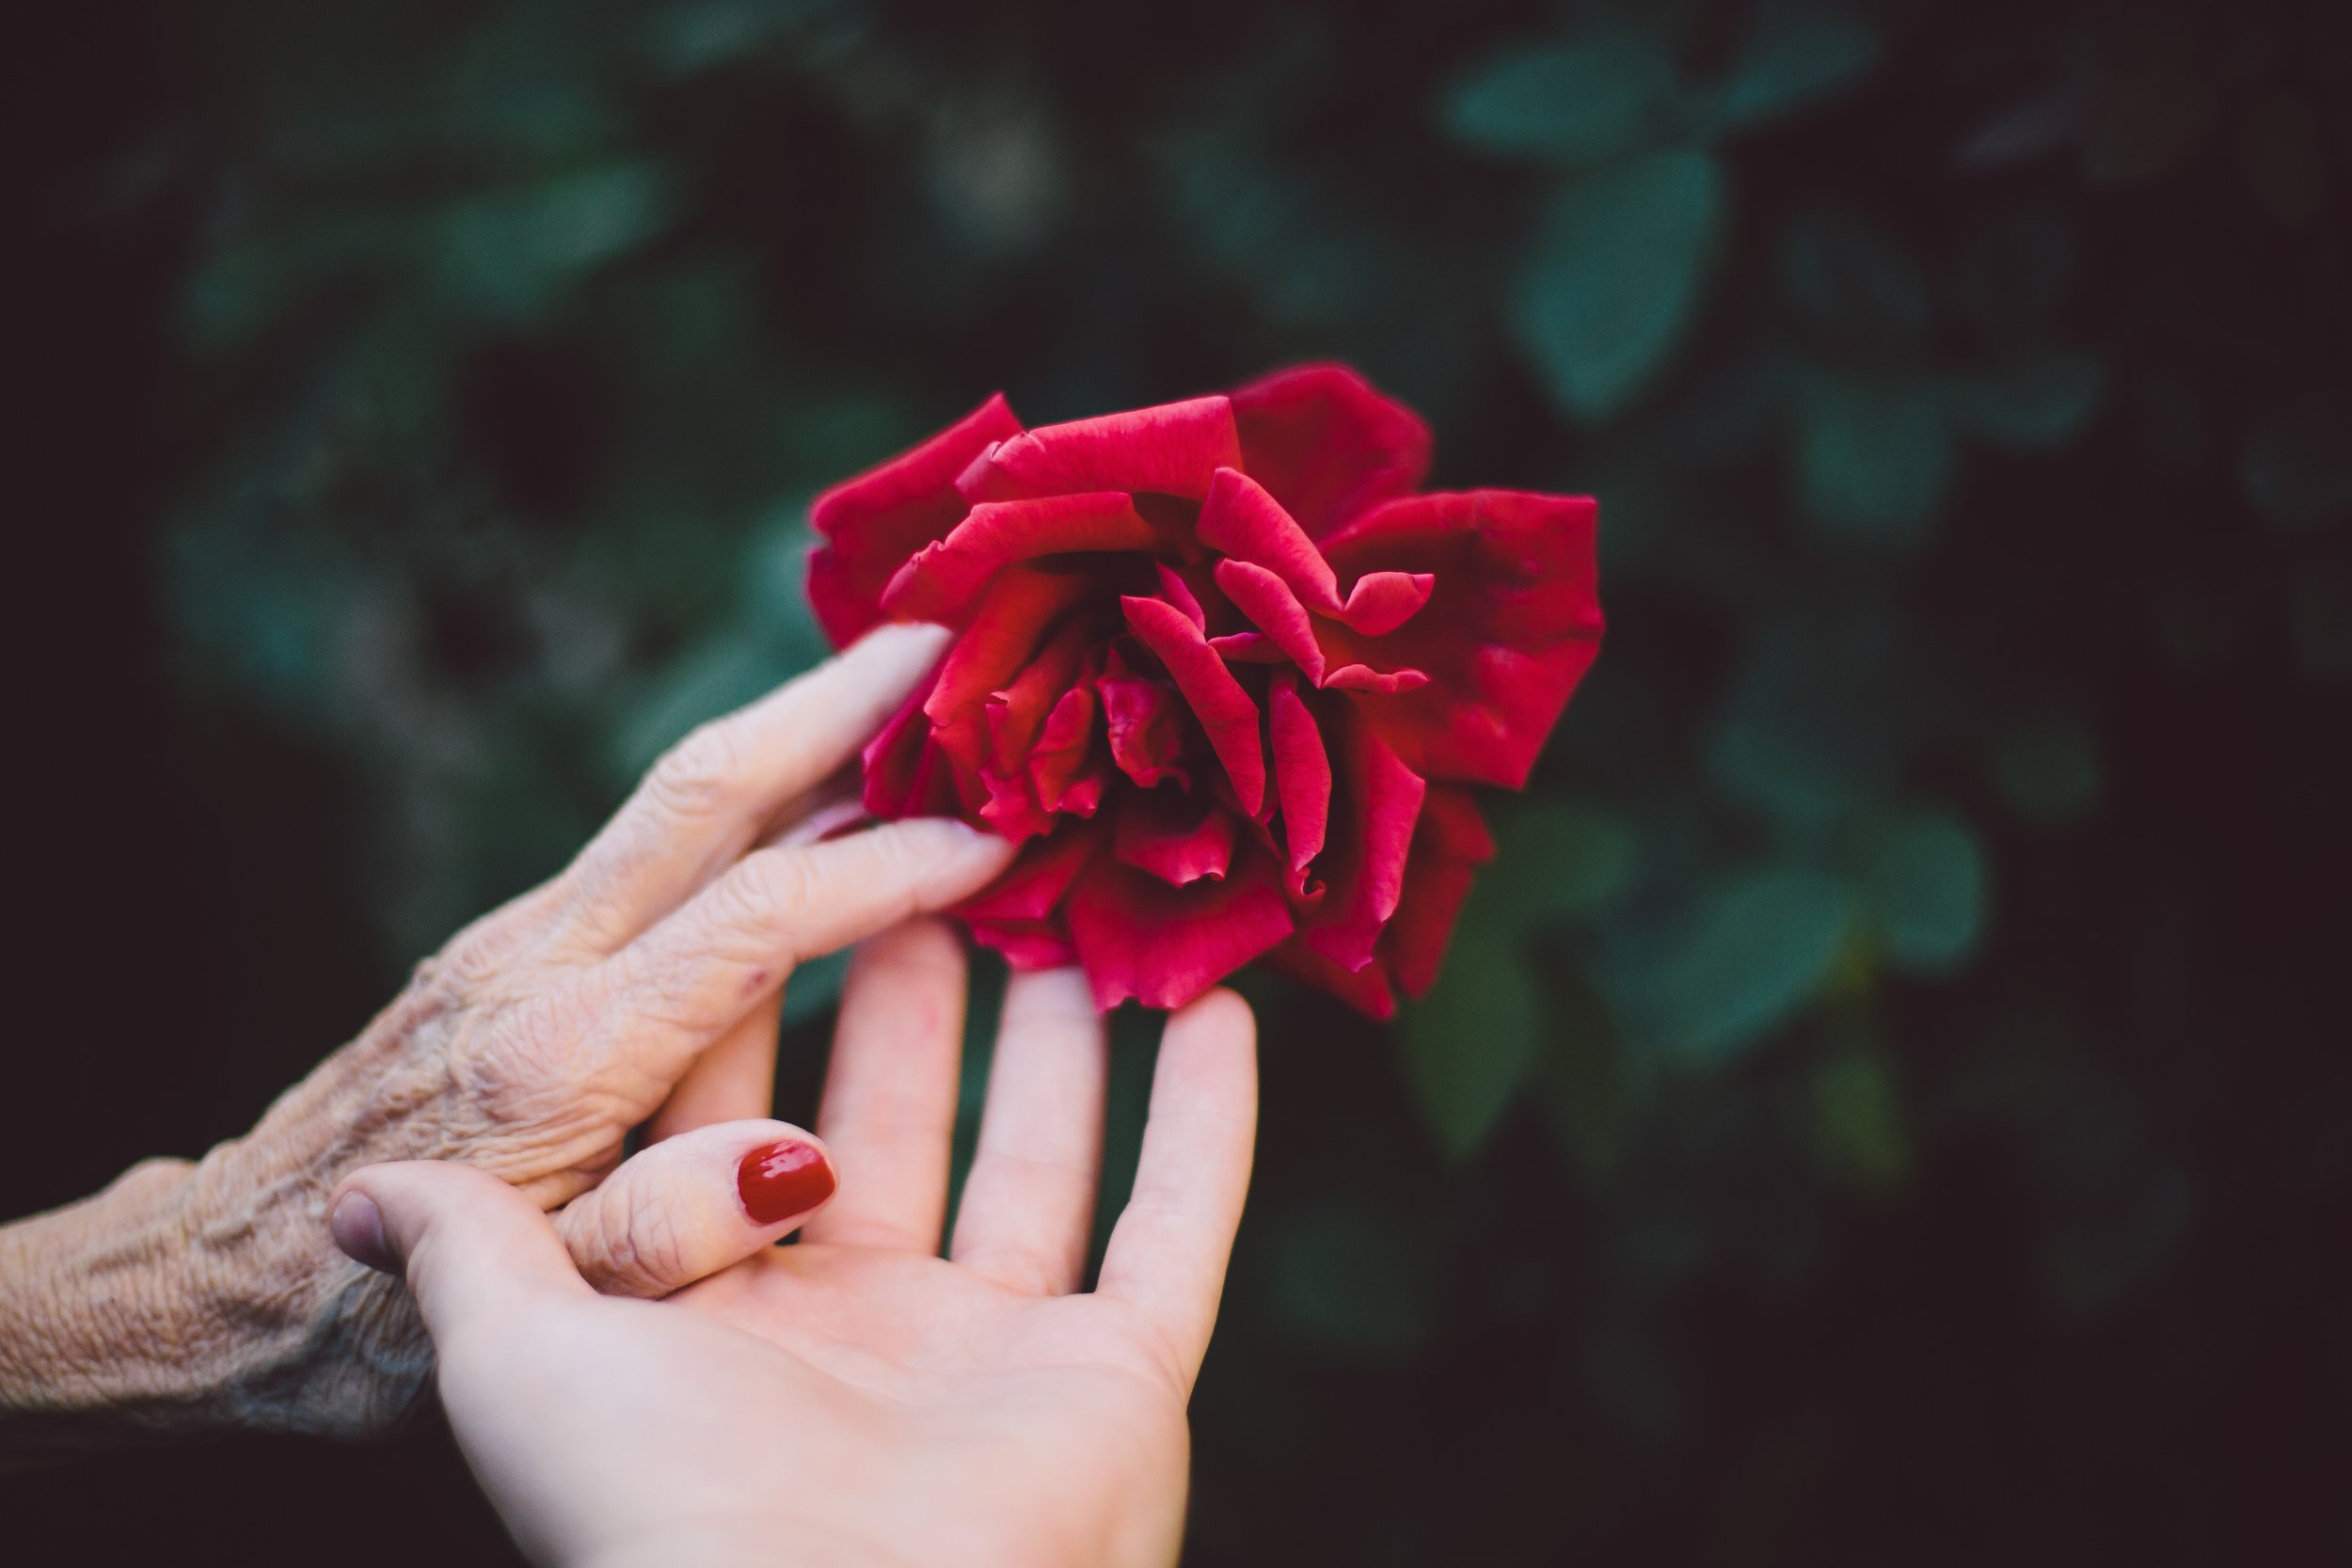 elderly hand and young hand with rose.jpg